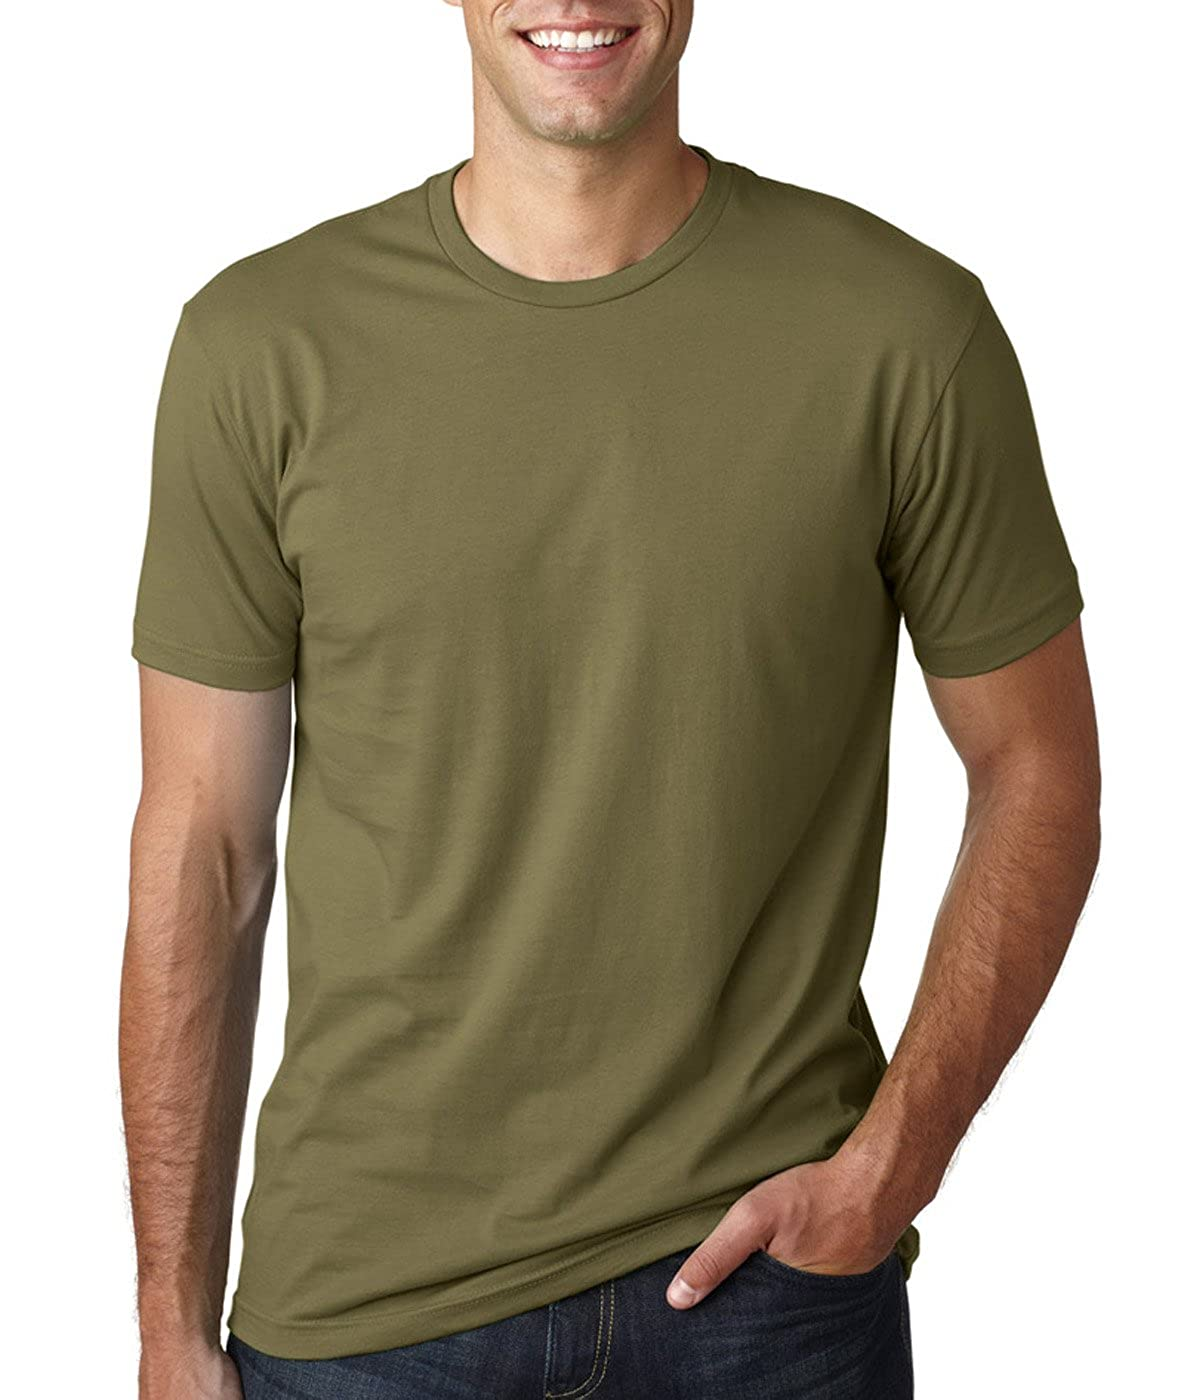 Next Level Mens Premium Fitted Short-Sleeve Crew T-Shirt Military Green Kelly Green 2 Pack - Small